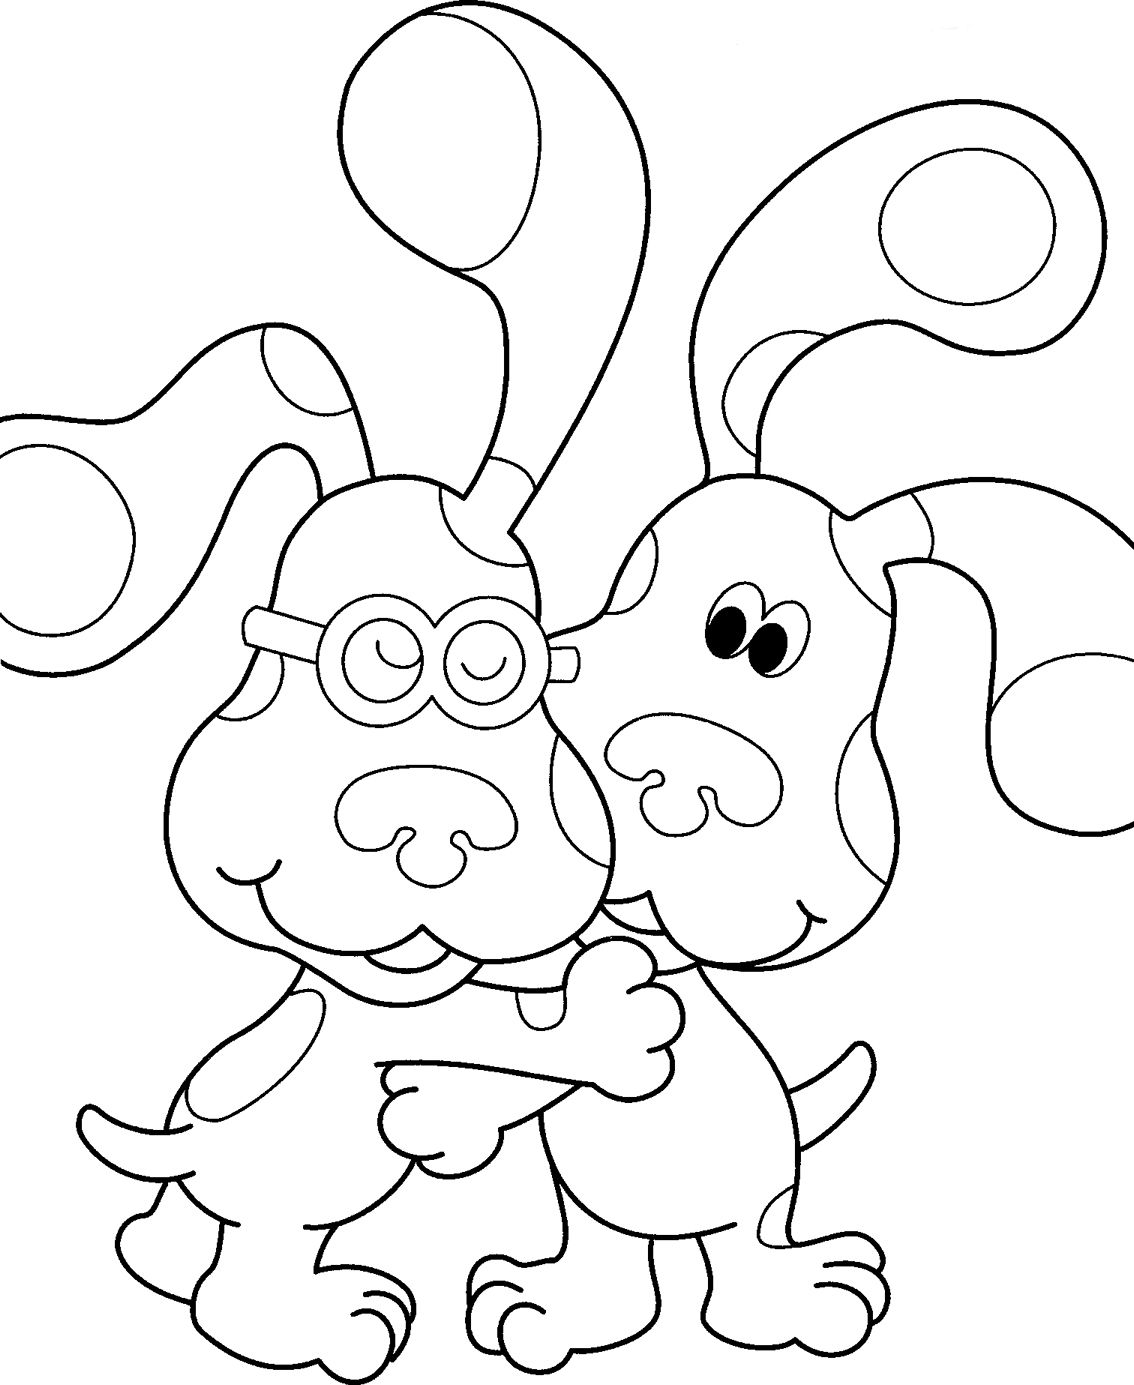 Blues Clues Coloring Pages Httpcolorings.cobluescluescoloring  Colorings  Pinterest